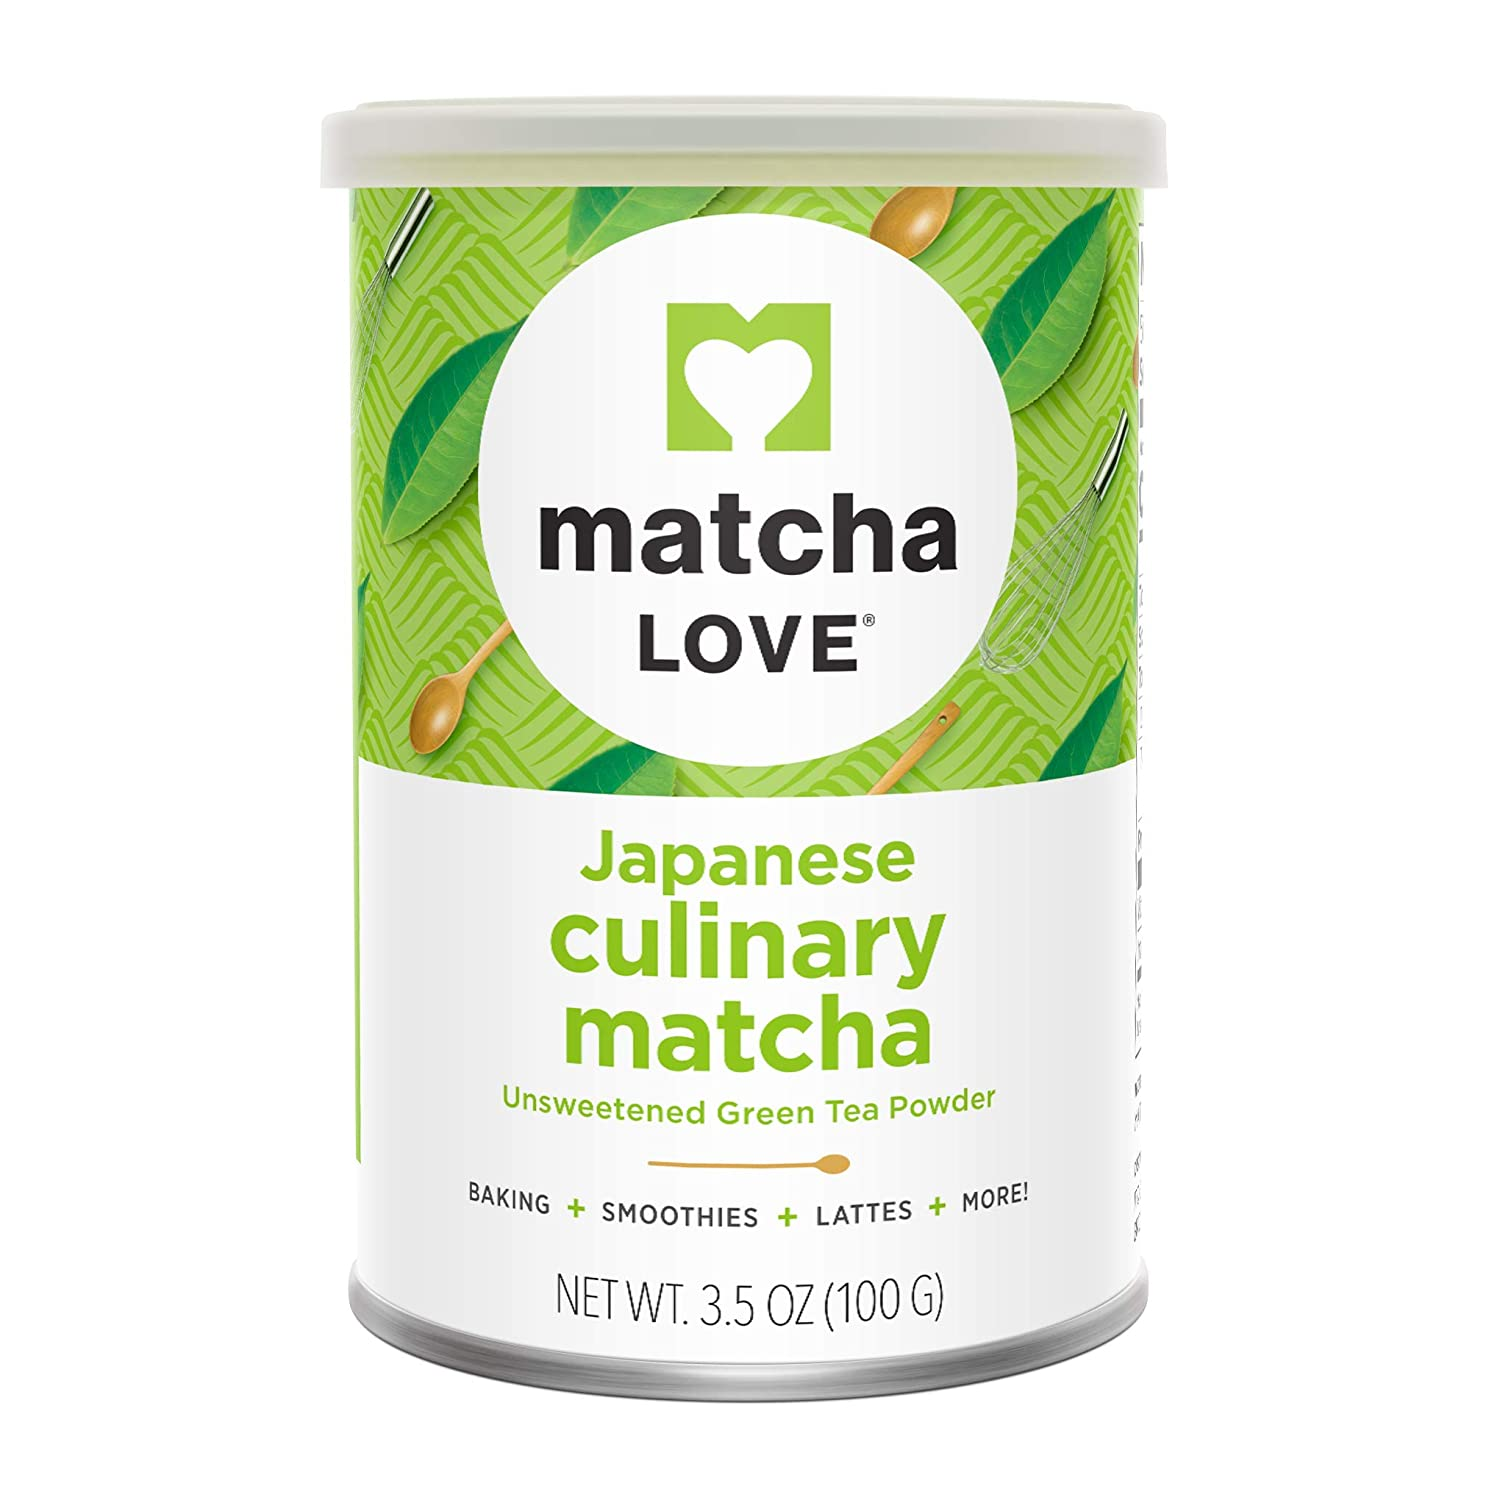 Matcha Love Culinary Matcha 3.5 Ounce Finely Milled Green Tea Leaves, Japanese Style Matcha Powder : Grocery & Gourmet Food